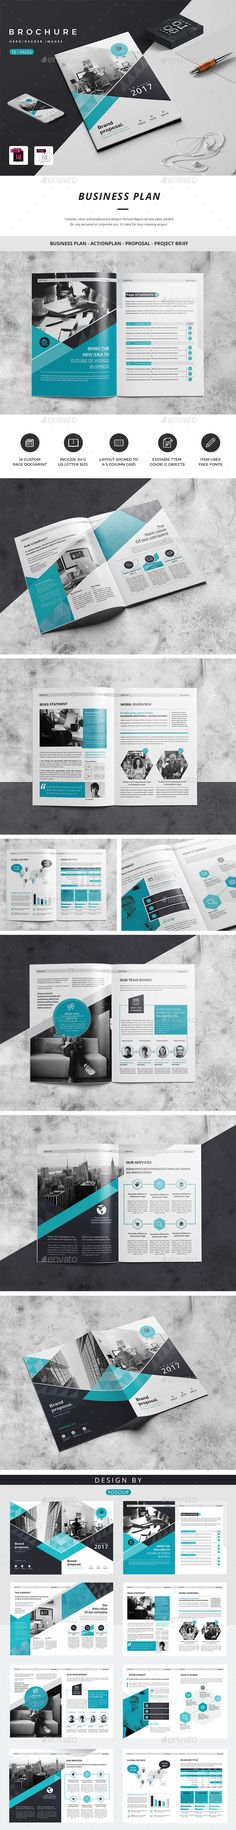 Company Brochure by Y-GFX Company Brochure <pra>This InDesign brochure is clean & professional?. Create your company鈥檚 documentation quick and easy. </pra>